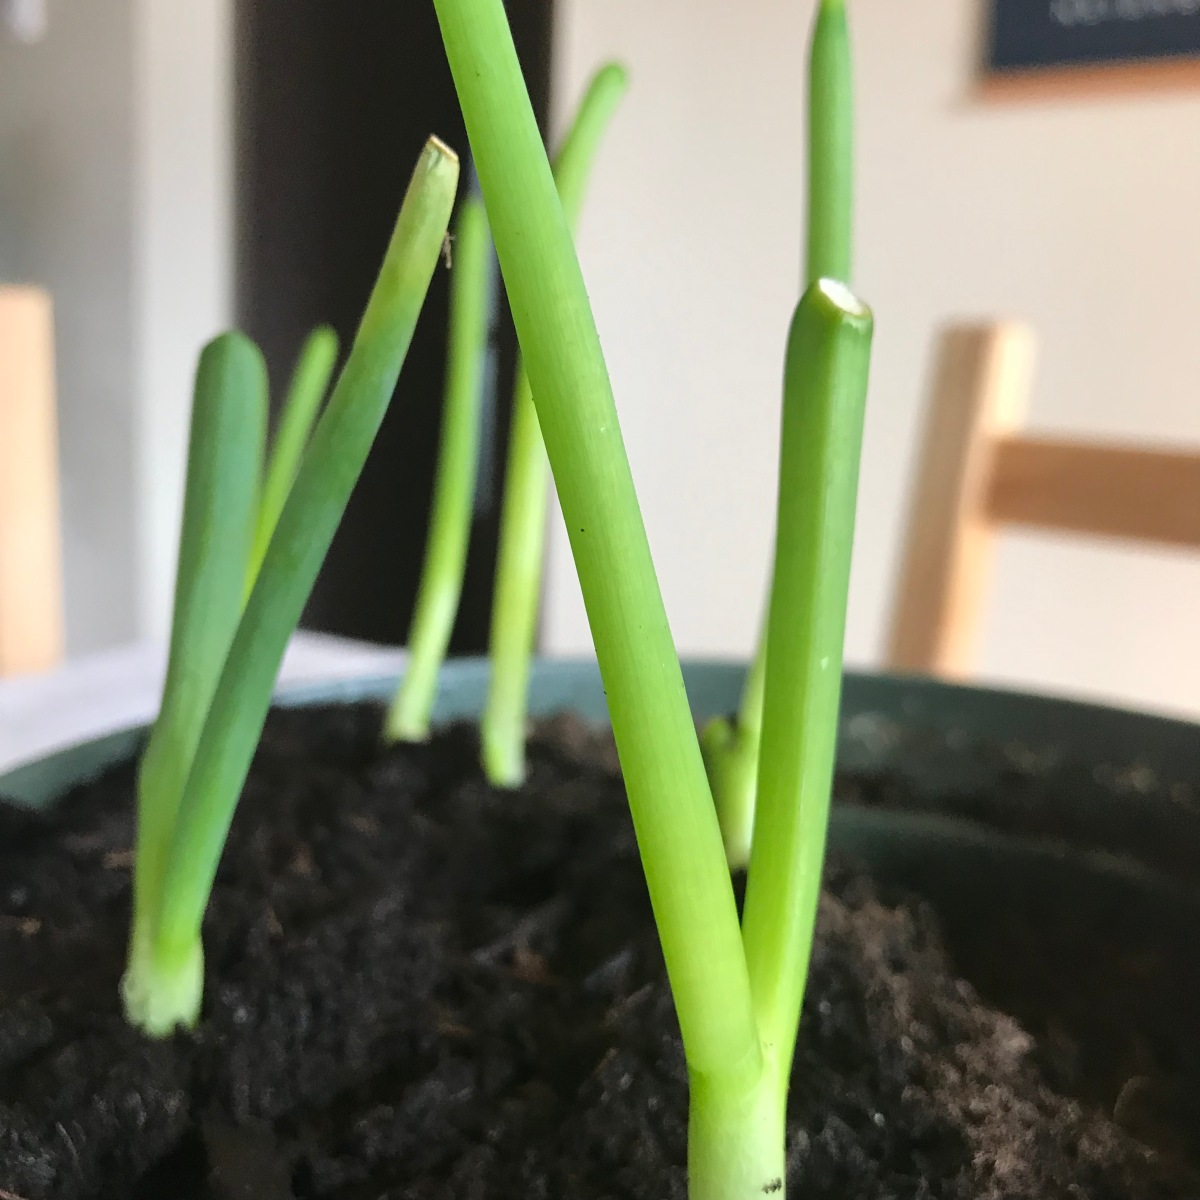 Reusing Food Scraps: Green Onions